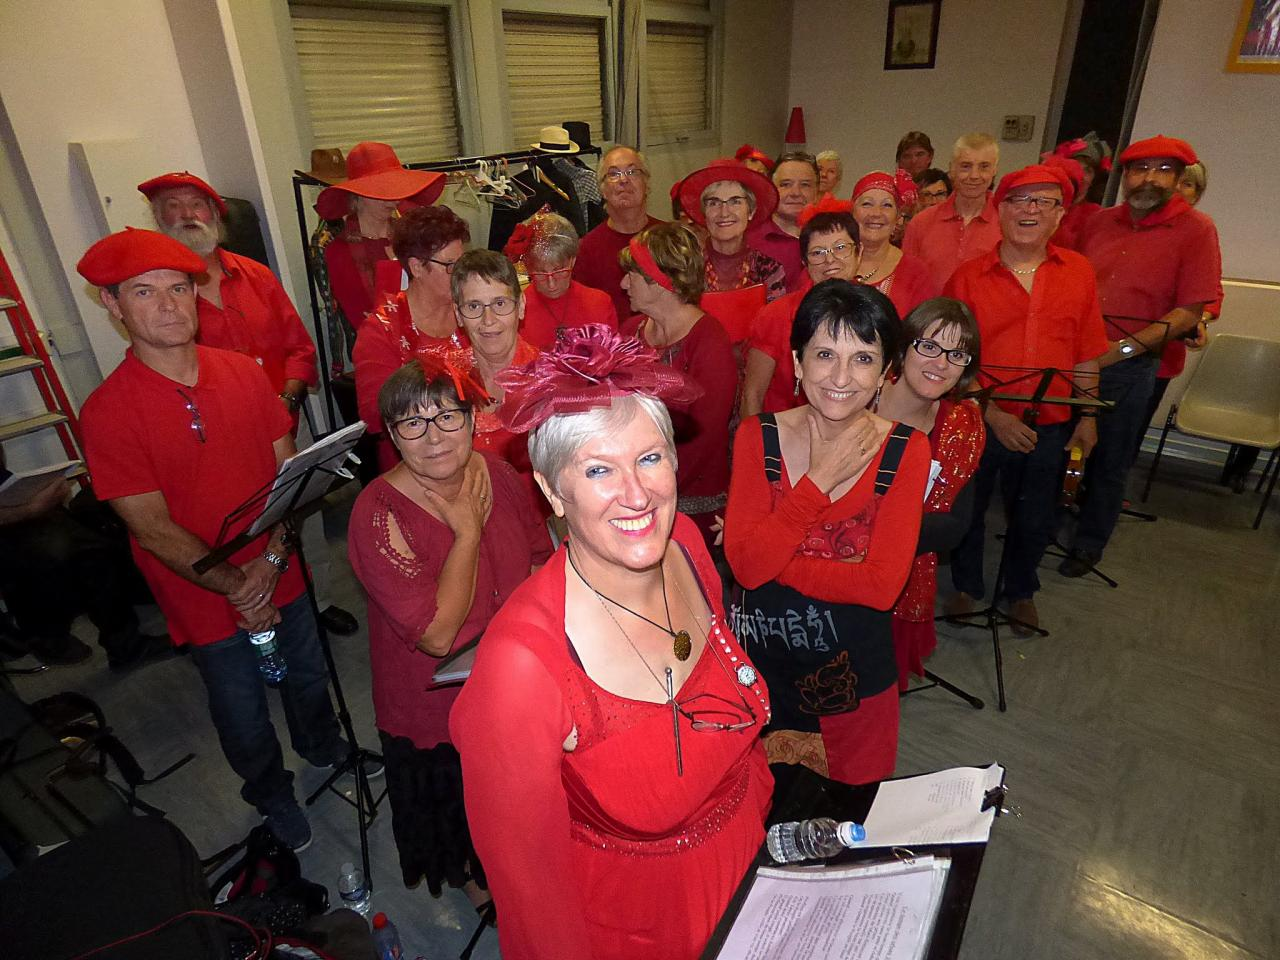 Festin Choral Gaperons Rouges-004